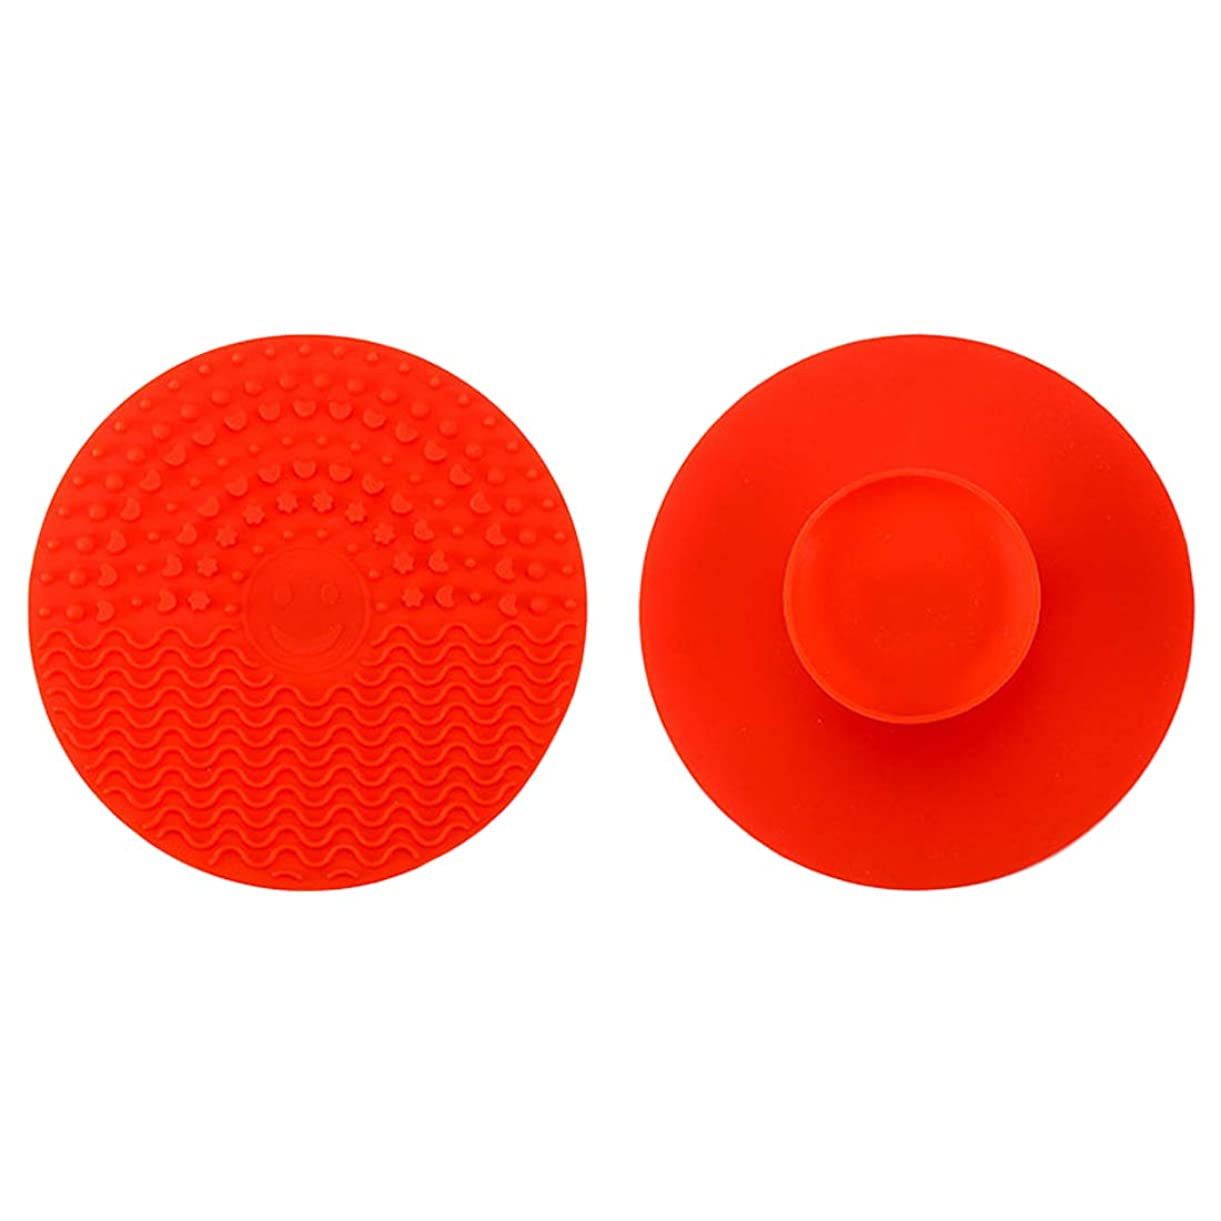 1Pcs Brush Cleaner Cleaning Mat Washing Scrubber Pad Silicone Makeup Brush Cleansing Pad Palette Cosmetic Make Up Cleaner Tools Red nvpjf6800